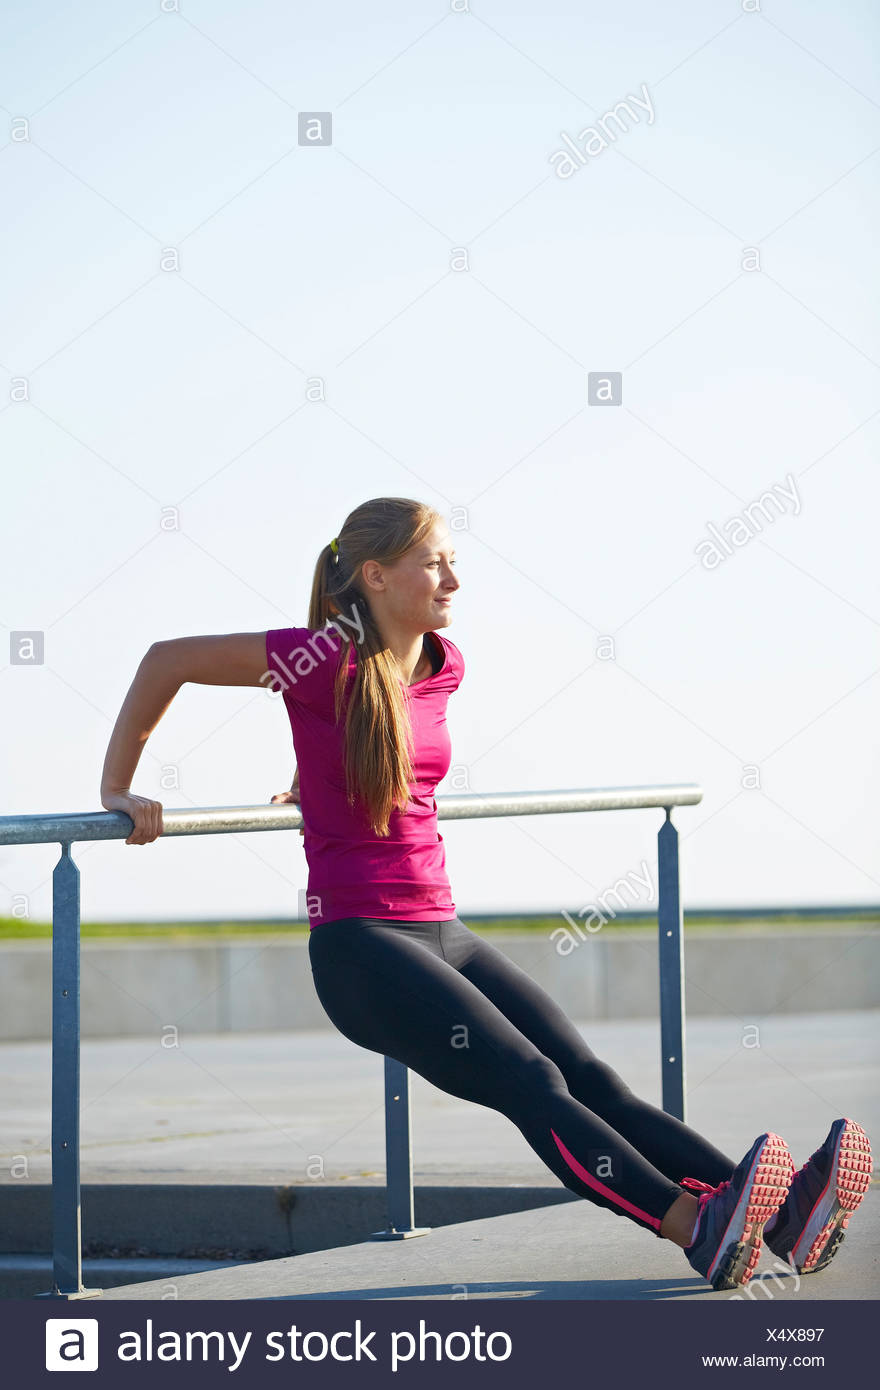 Runner stretching on rooftop Photo Stock